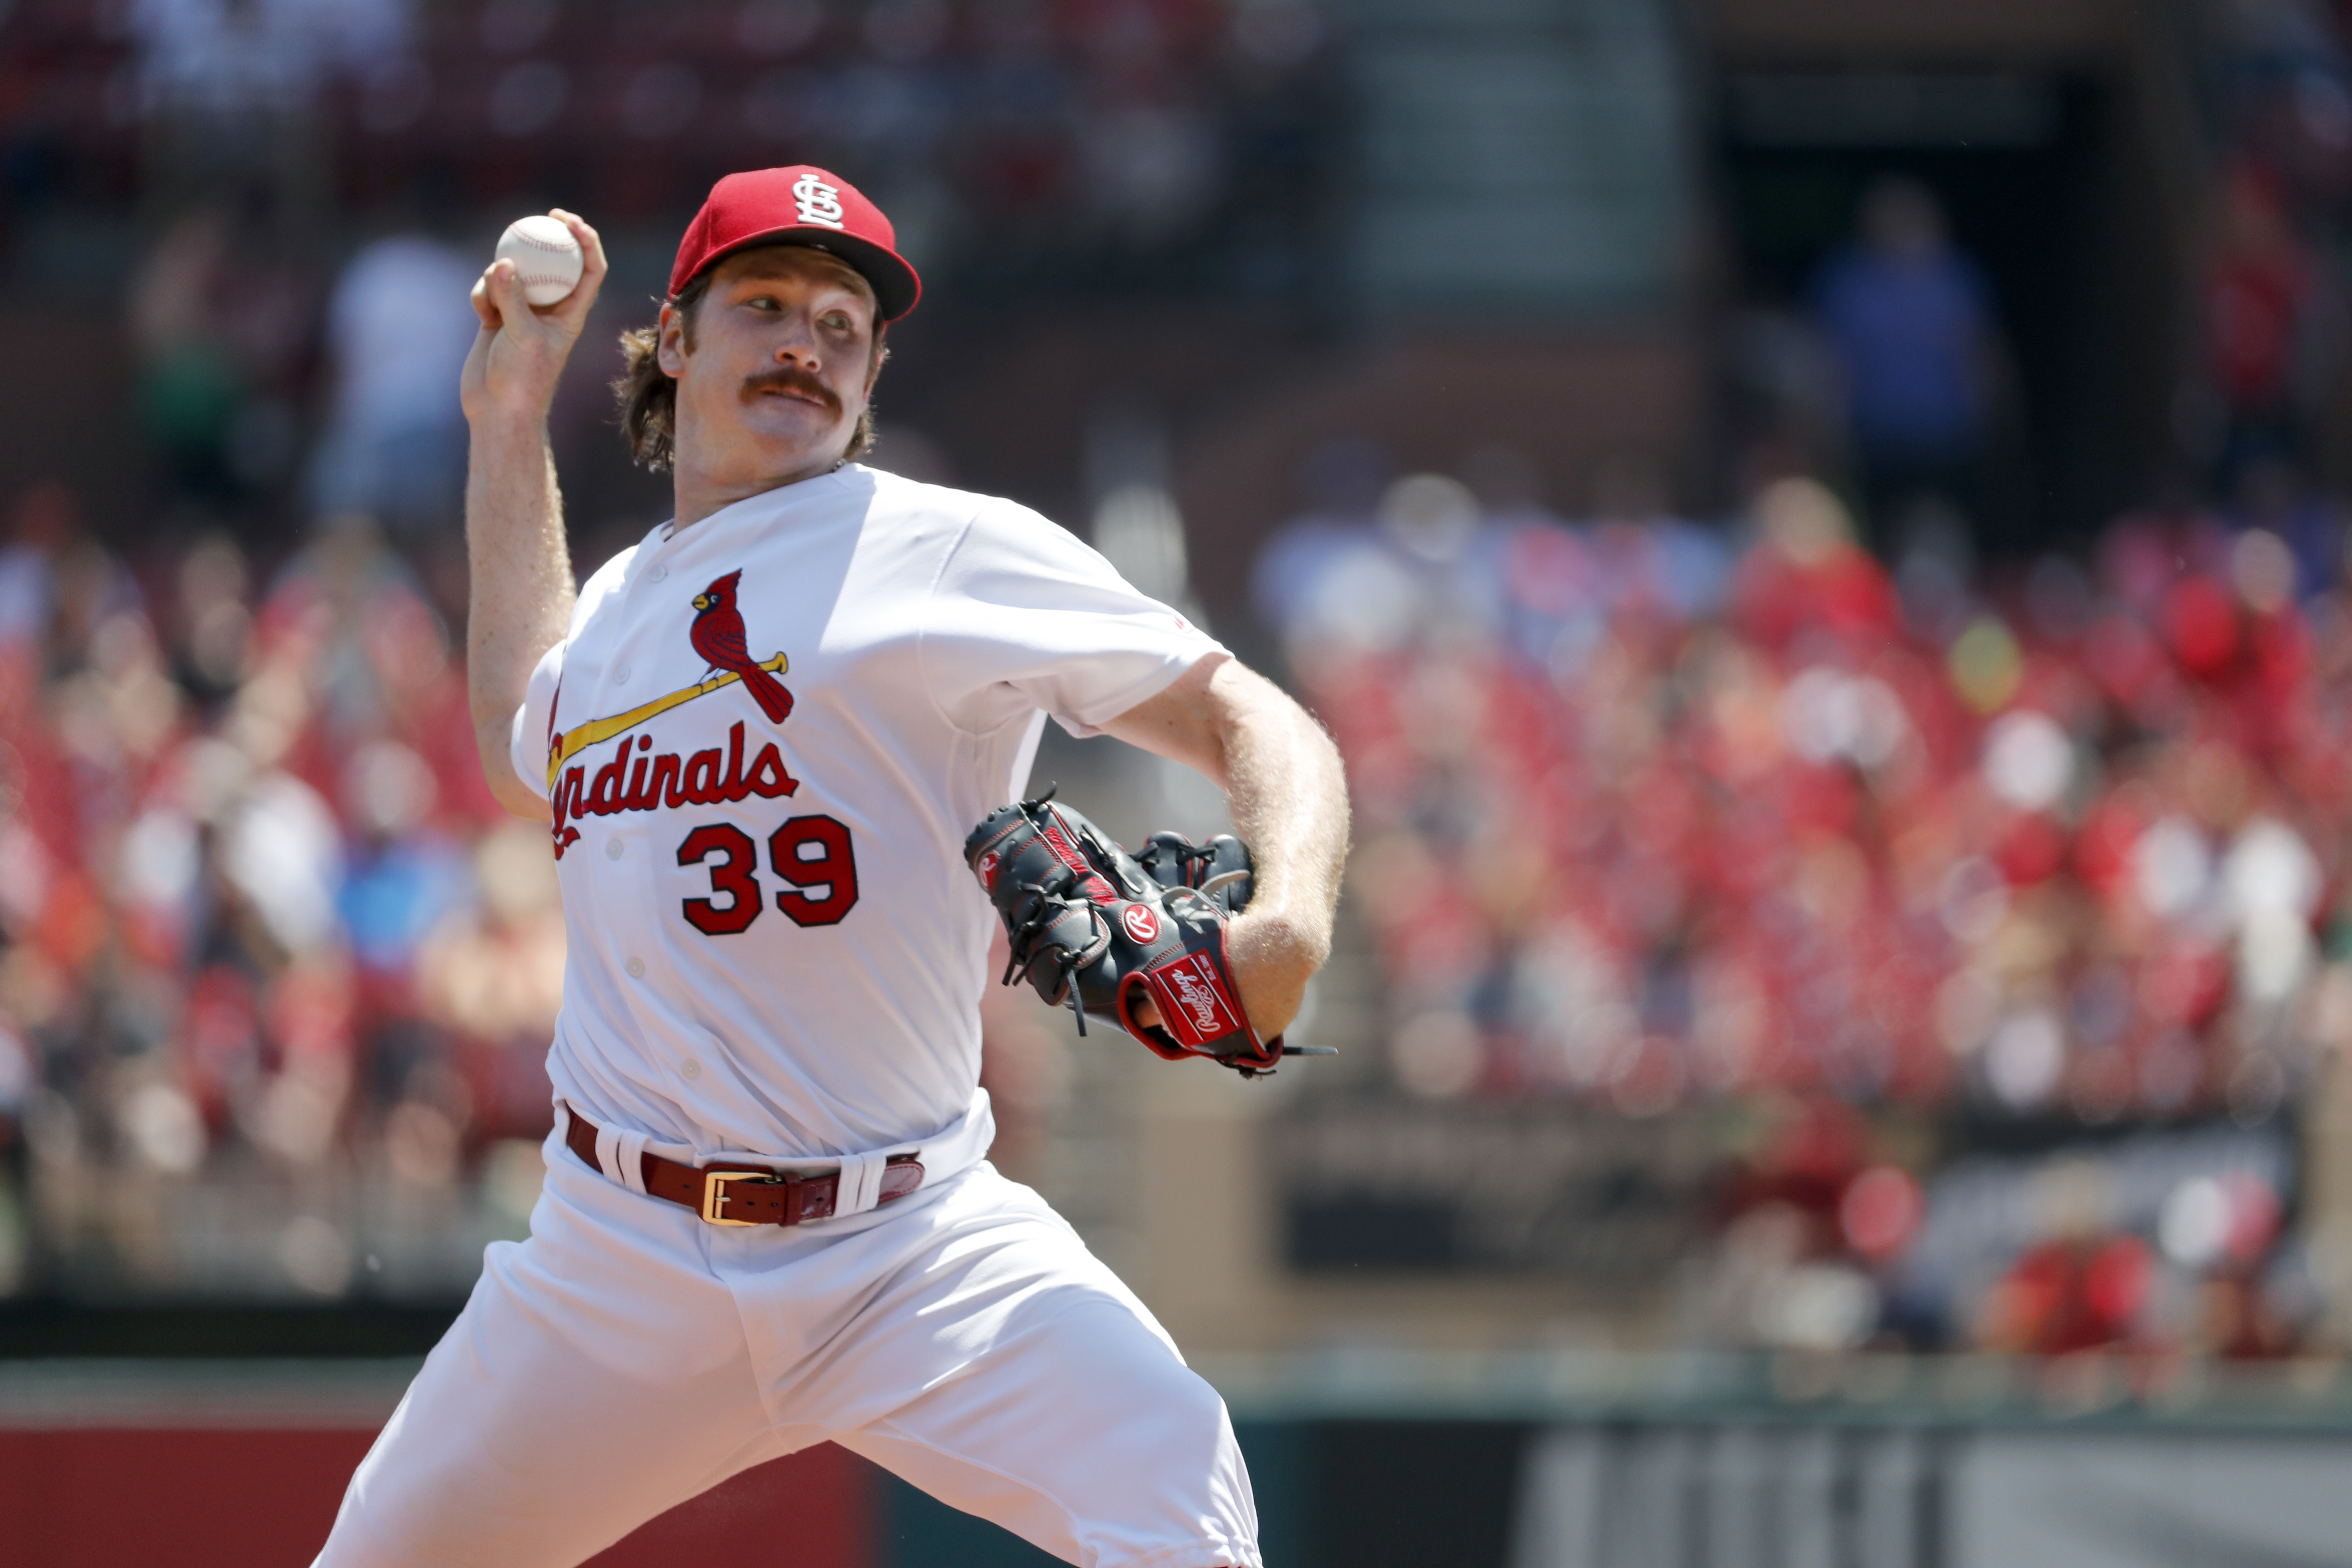 Pitcher Miles Mikolas, a gem free-agent signing for the St. Louis Cardinals, will face the Phillies tonight at Citizens Bank Park.